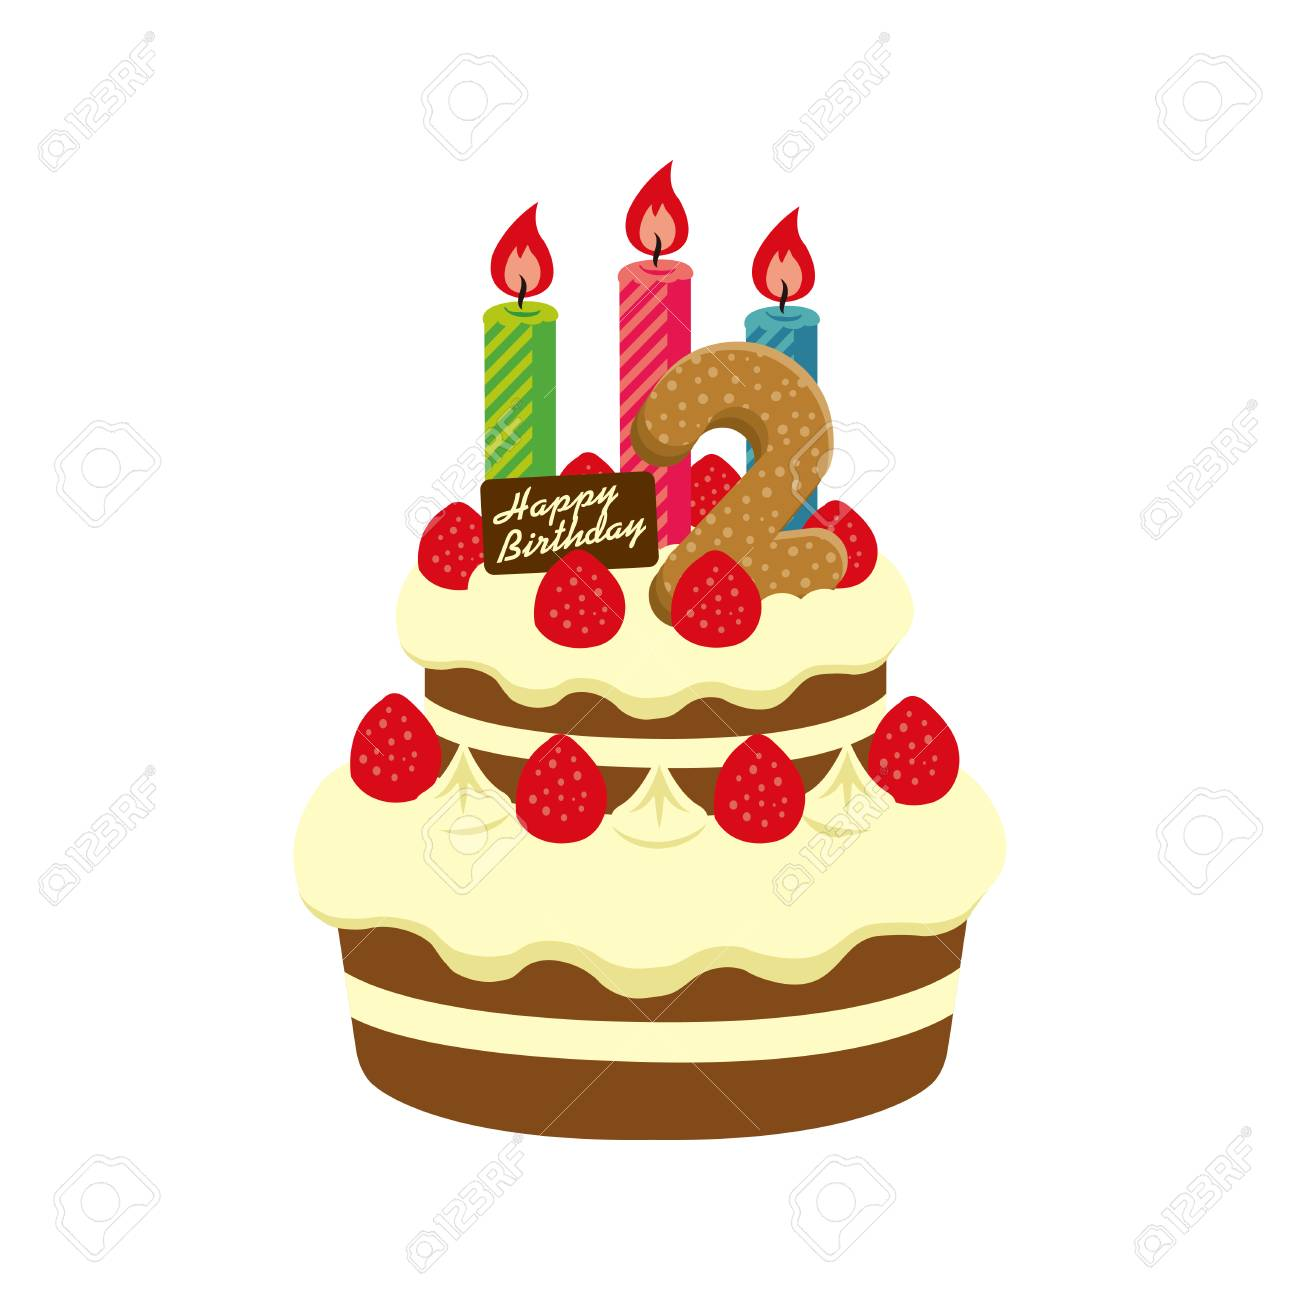 Brilliant Birthday Cake Illustration For 2 Years Old Royalty Free Cliparts Funny Birthday Cards Online Elaedamsfinfo